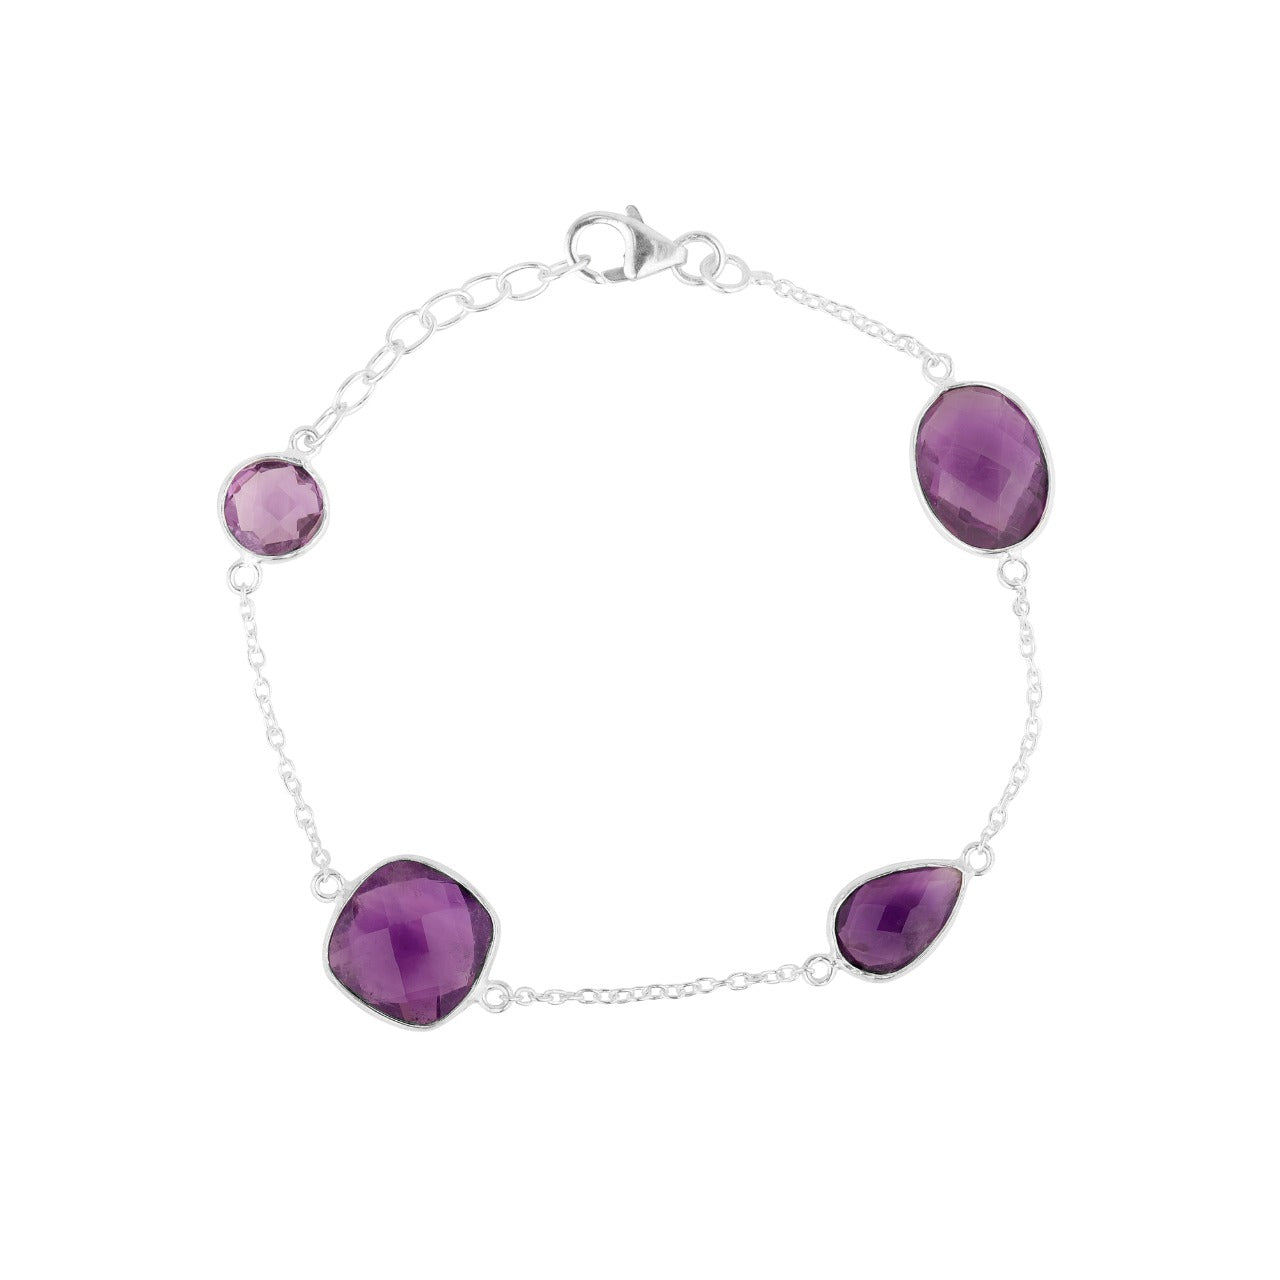 Purple Amethyst Bracelet with different stone sizes